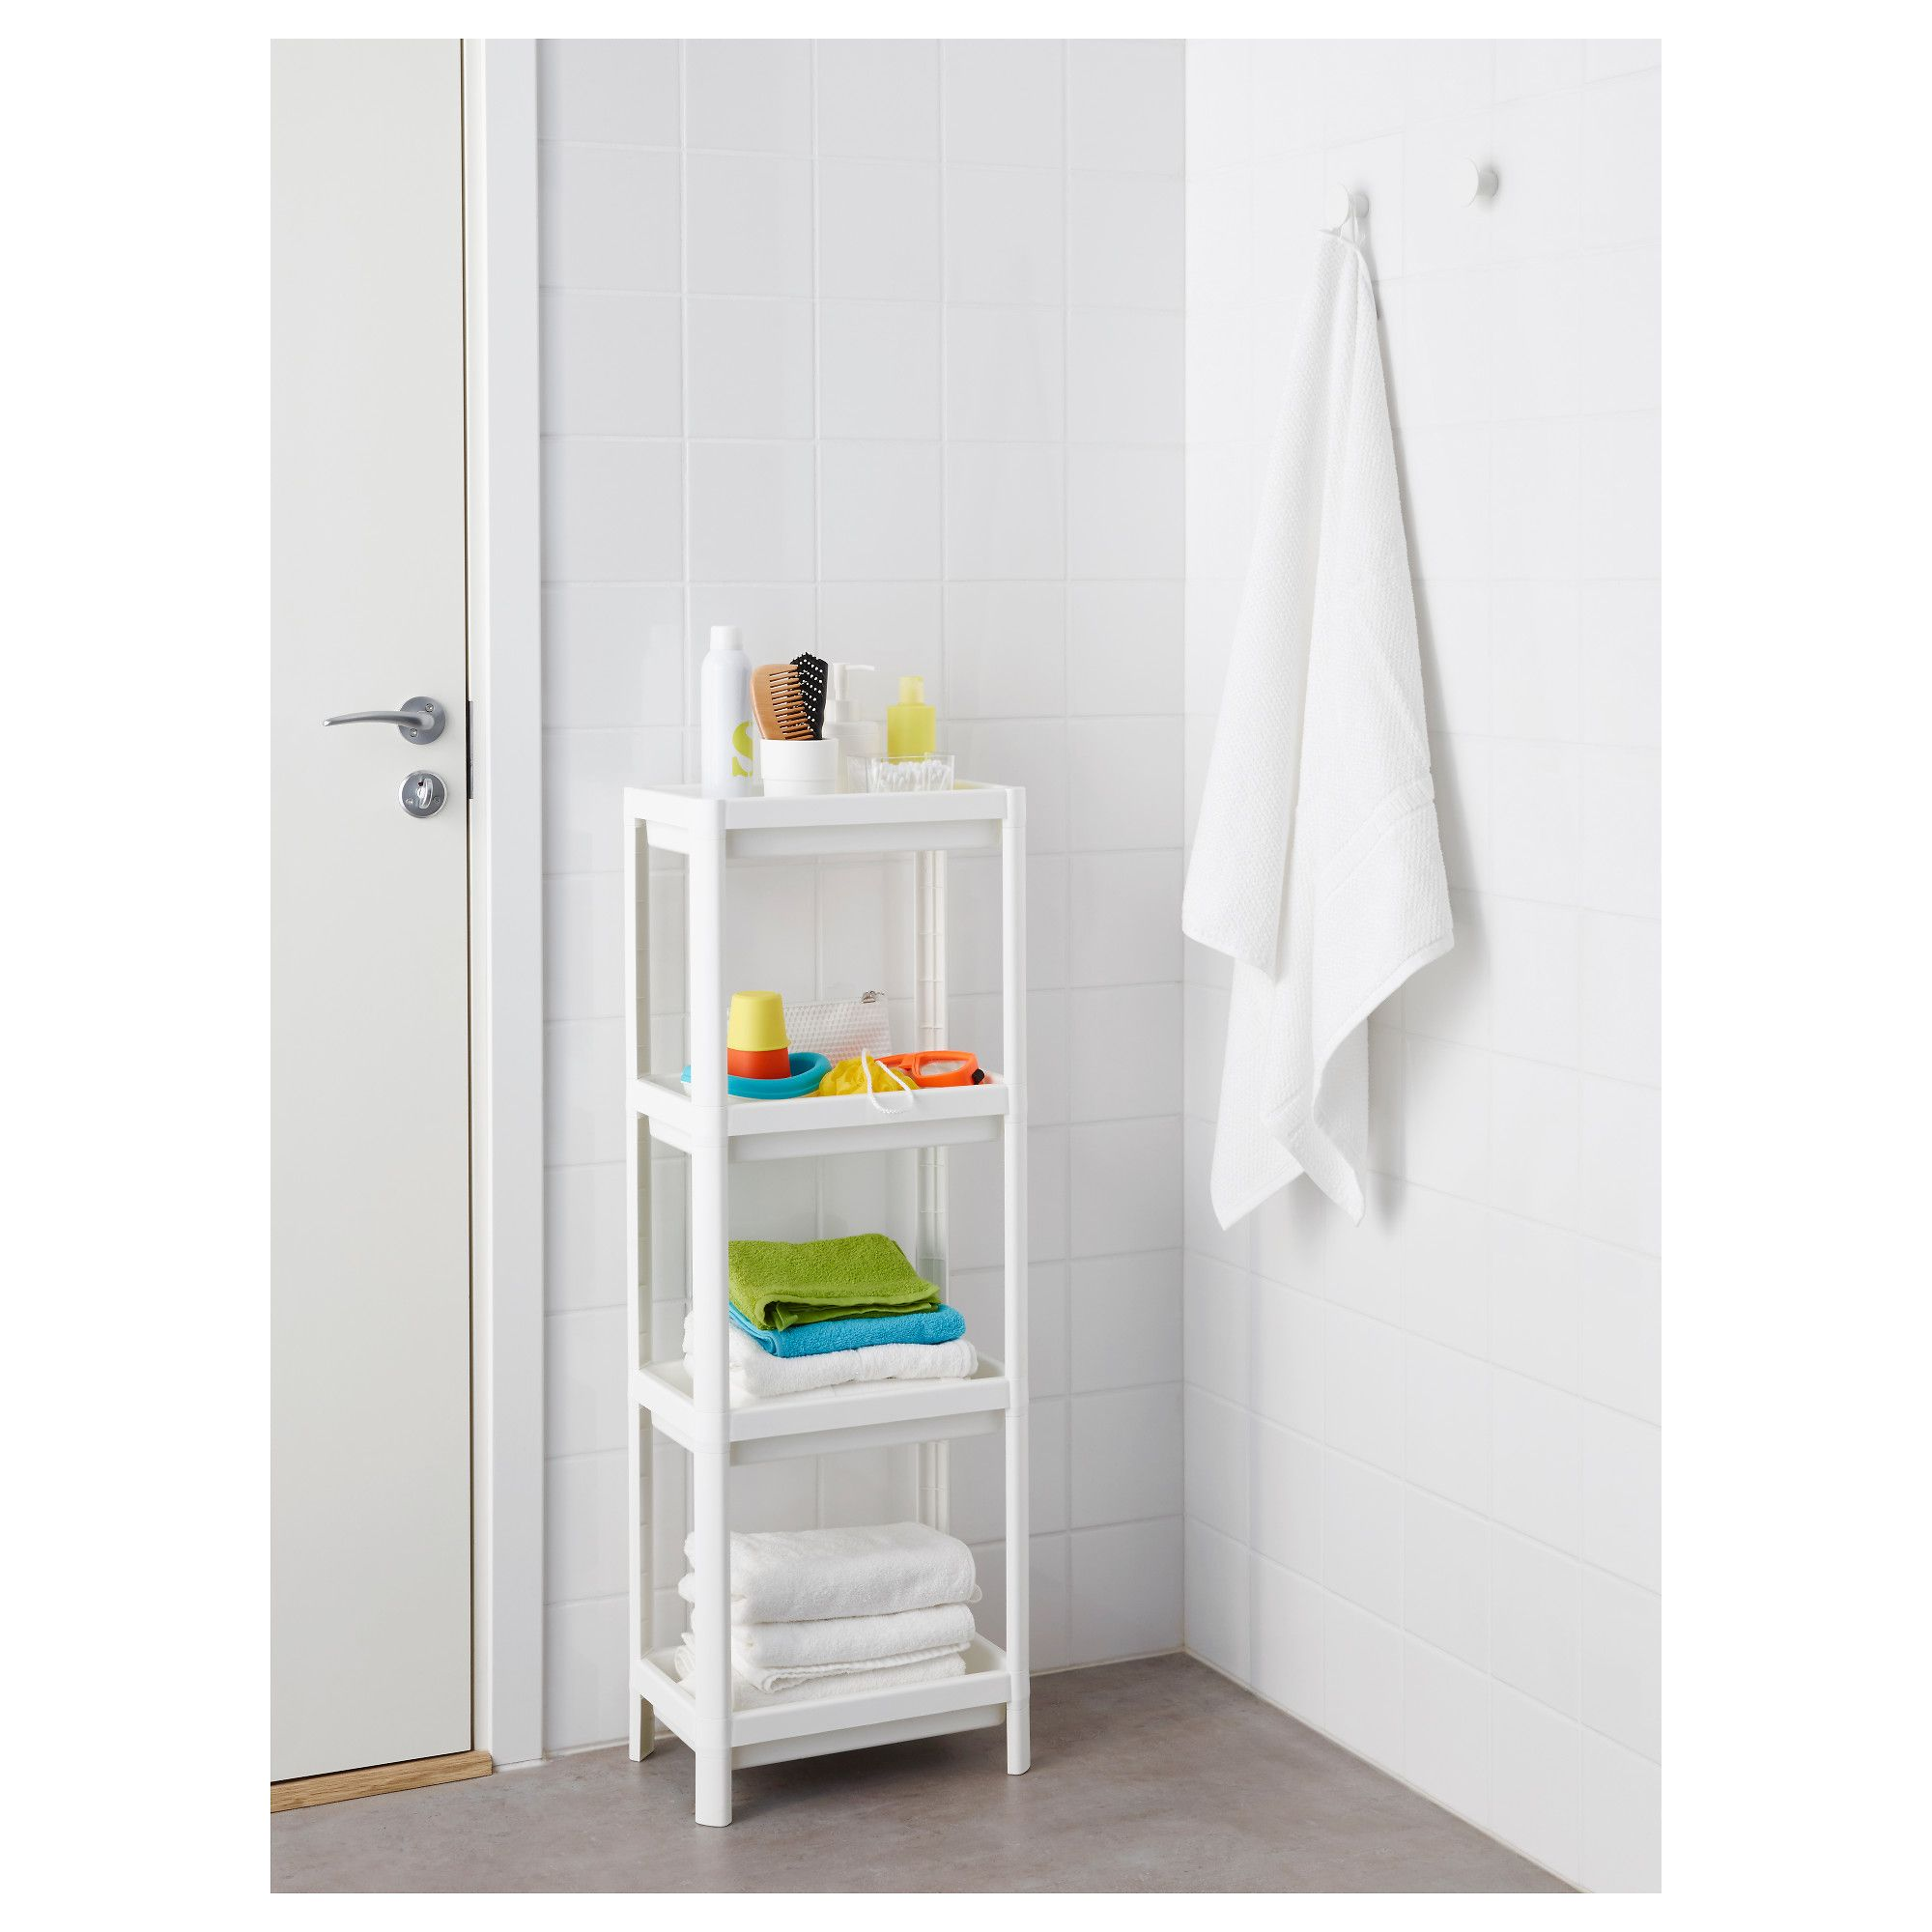 Check If This Will Fit Either Side Of The Toilet Width 36 Cm Shelf Unit